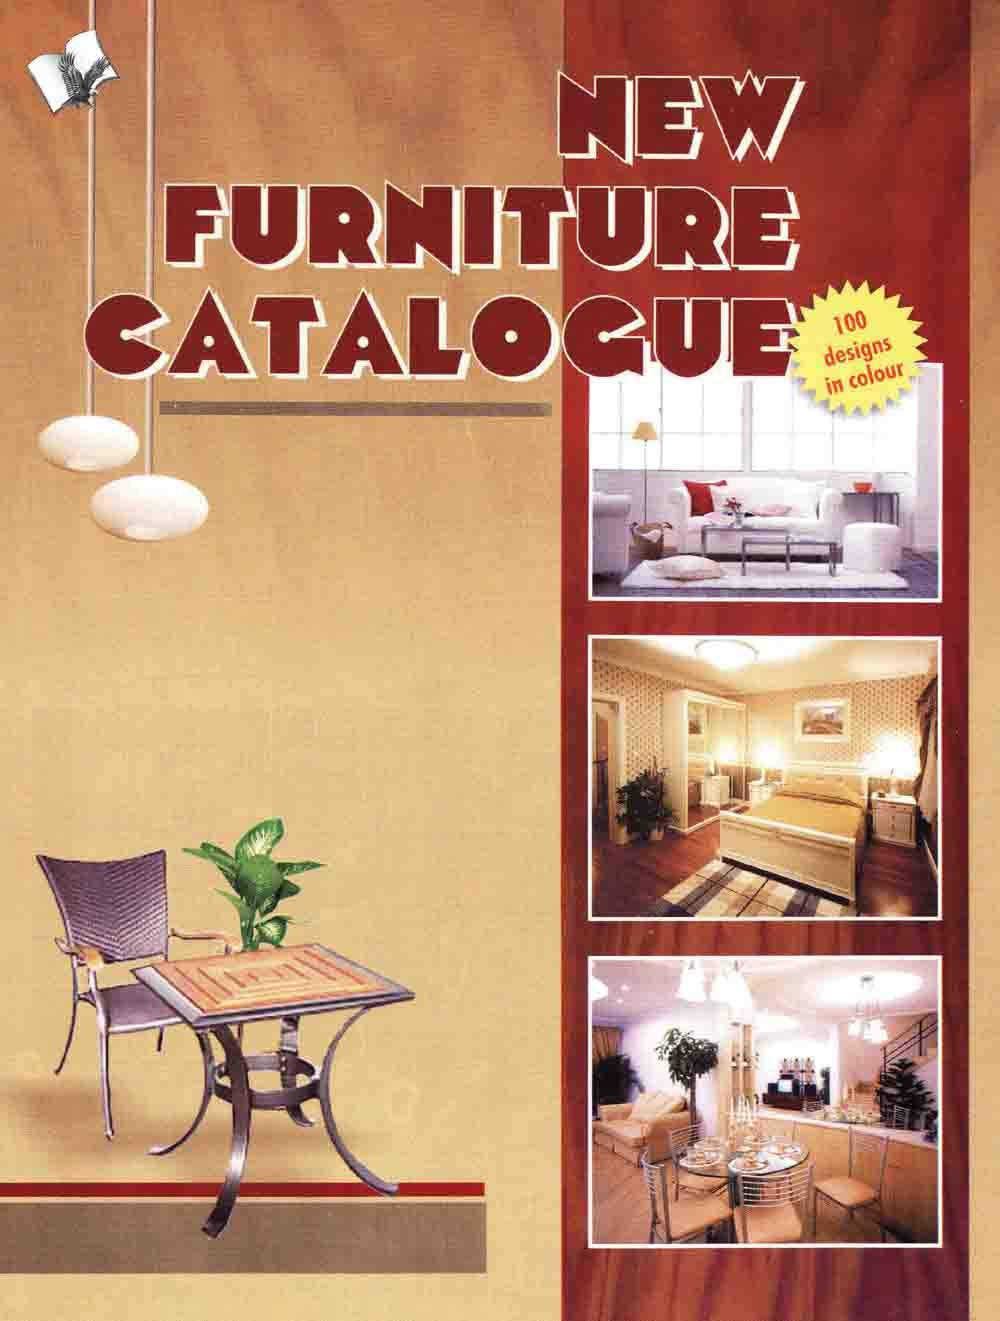 Buy New Furniture Catalogue Latest Furniture Styling for Homes ...